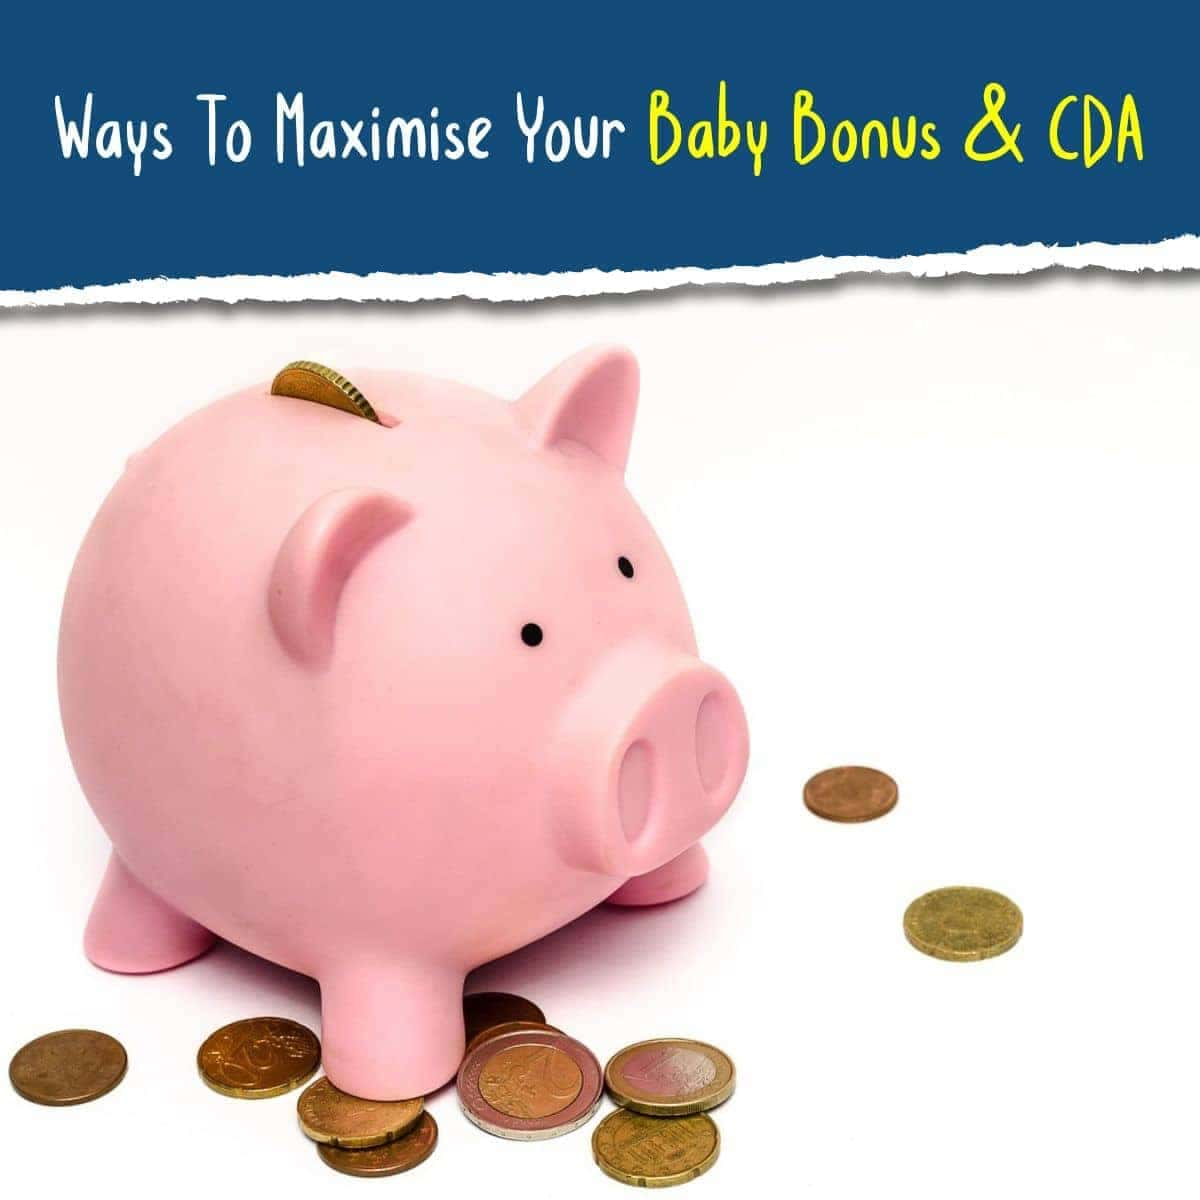 Ways To Maximise Your Baby Bonus and CDA